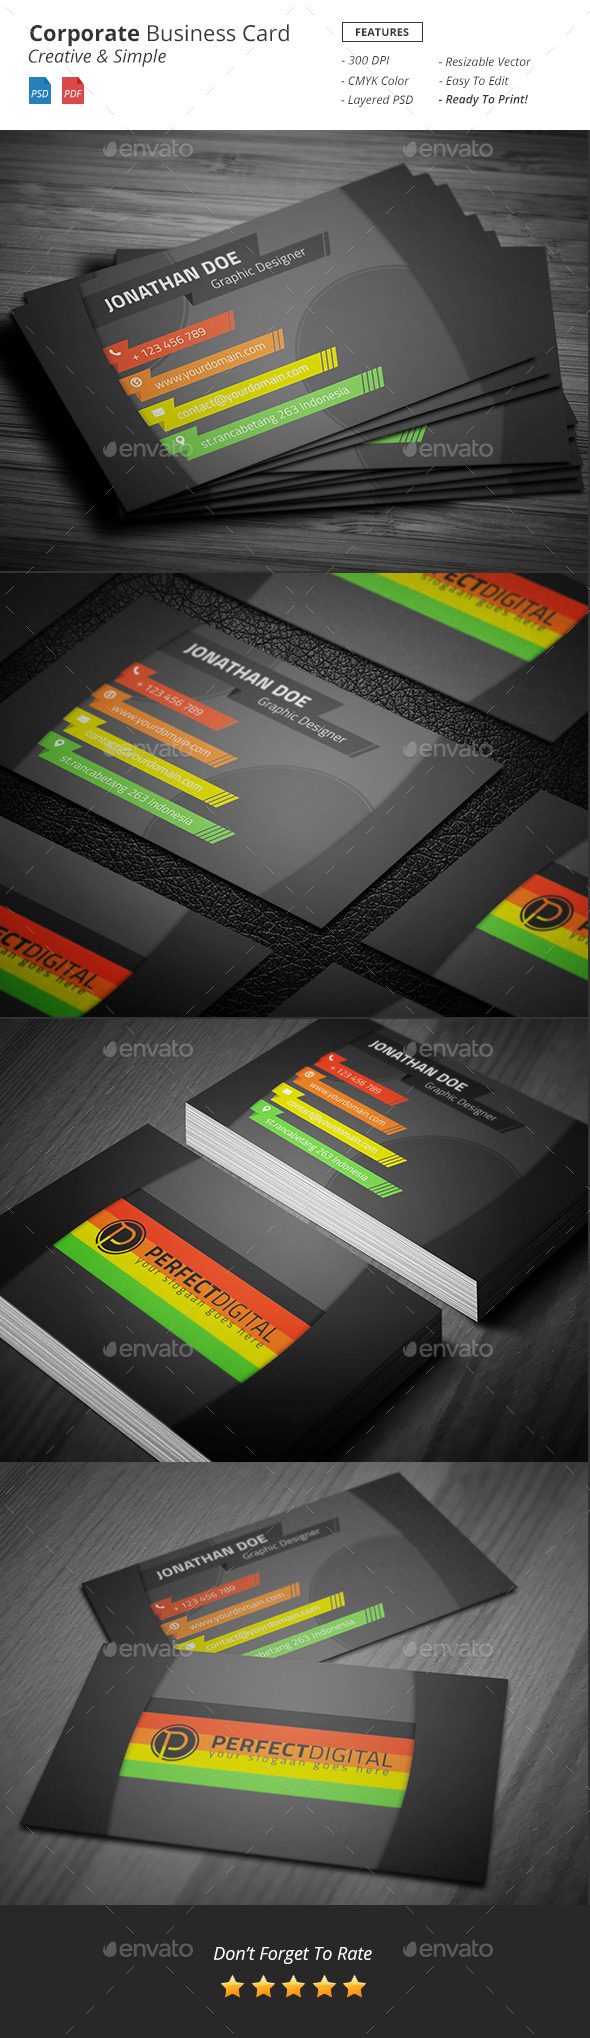 GraphicRiver Corporate Business Card 11072739